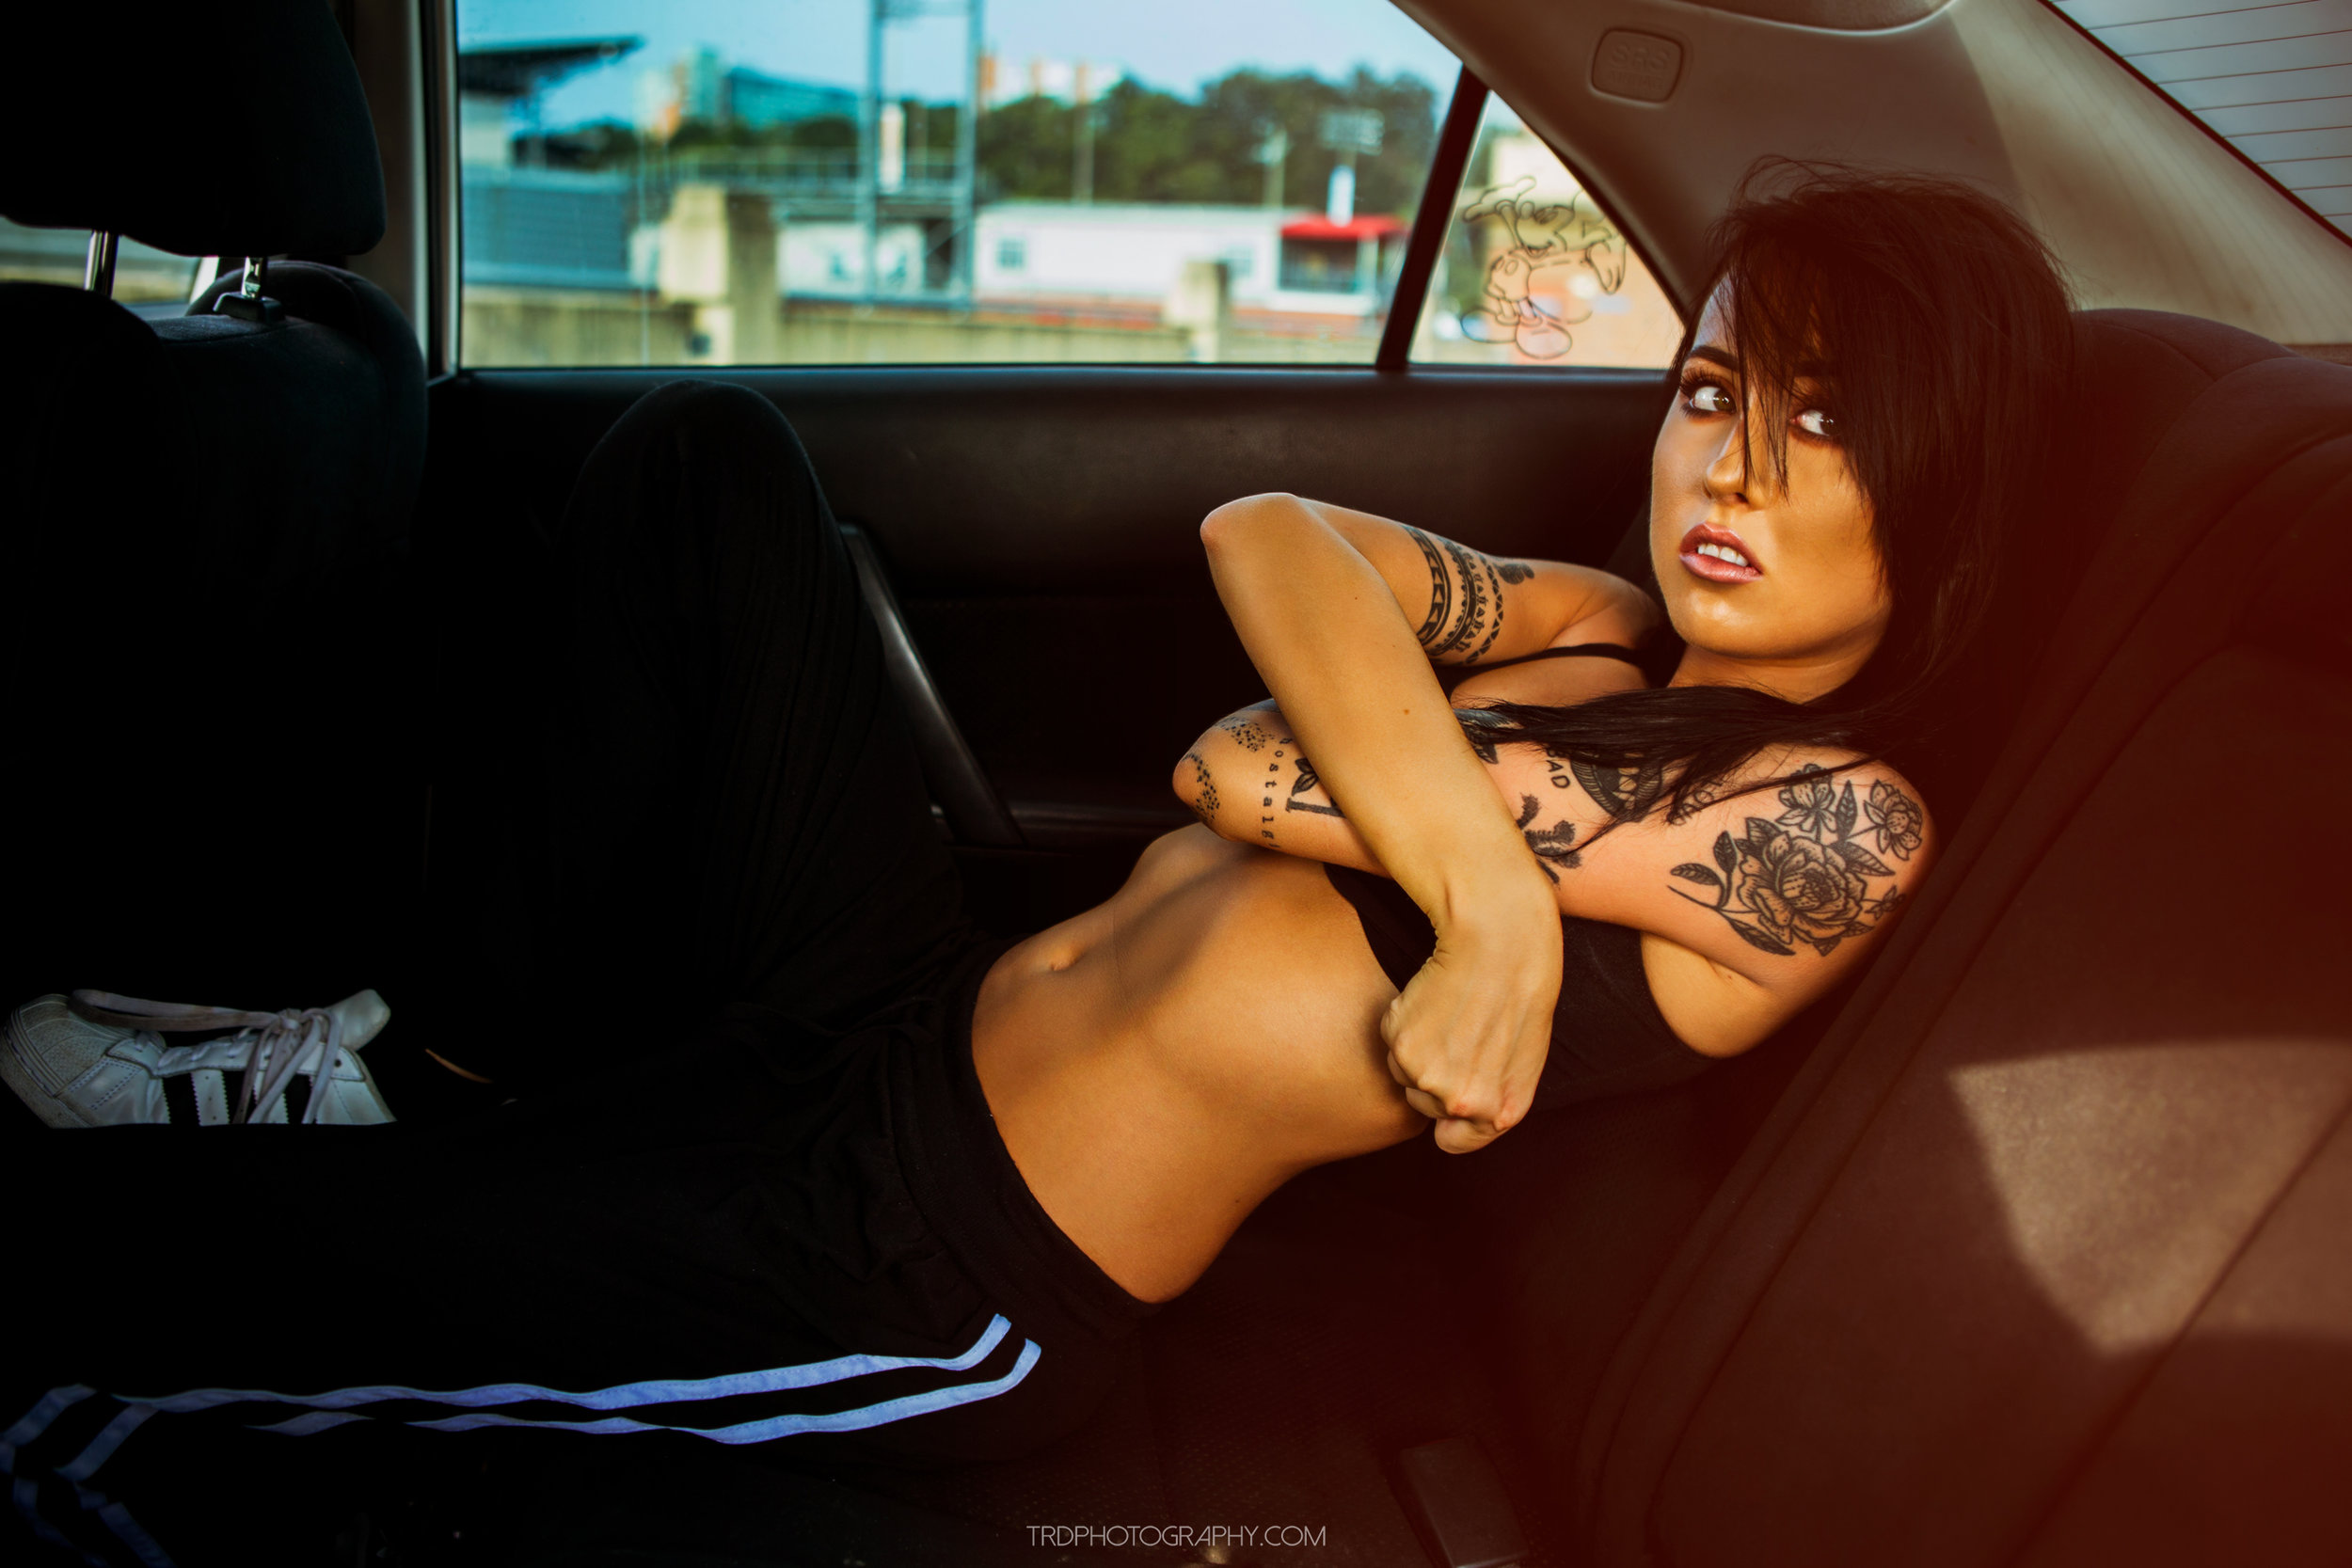 CeCe Sinclair - TRD Photography